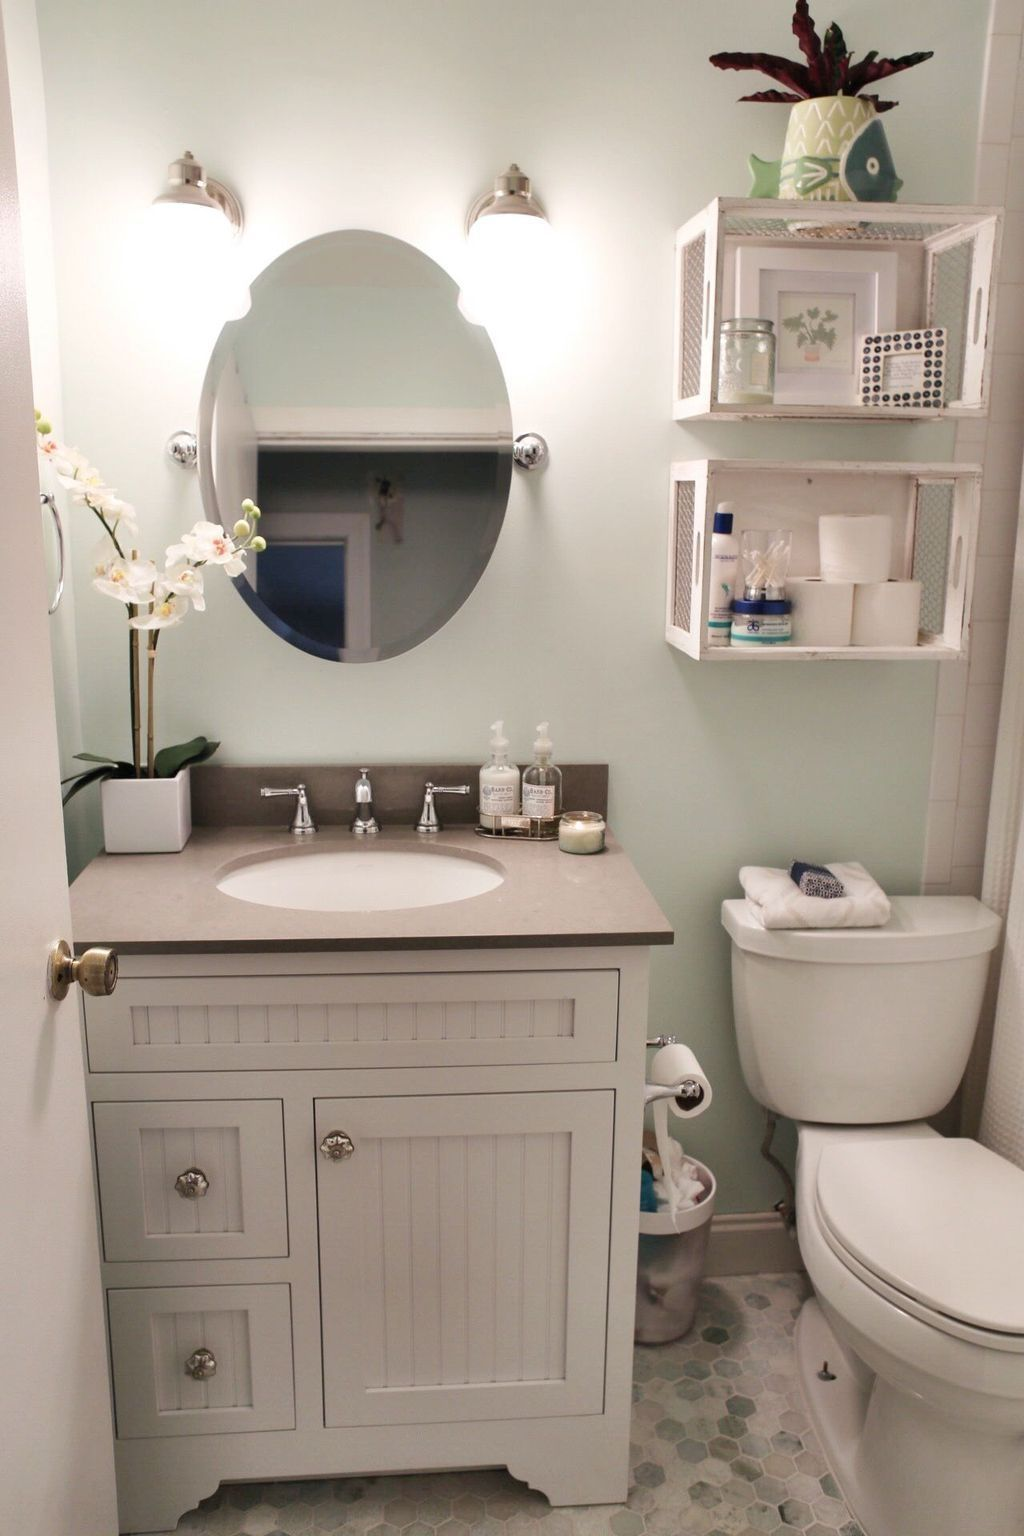 14+ Exalted Small Bathroom Remodel Industrial Ideas images